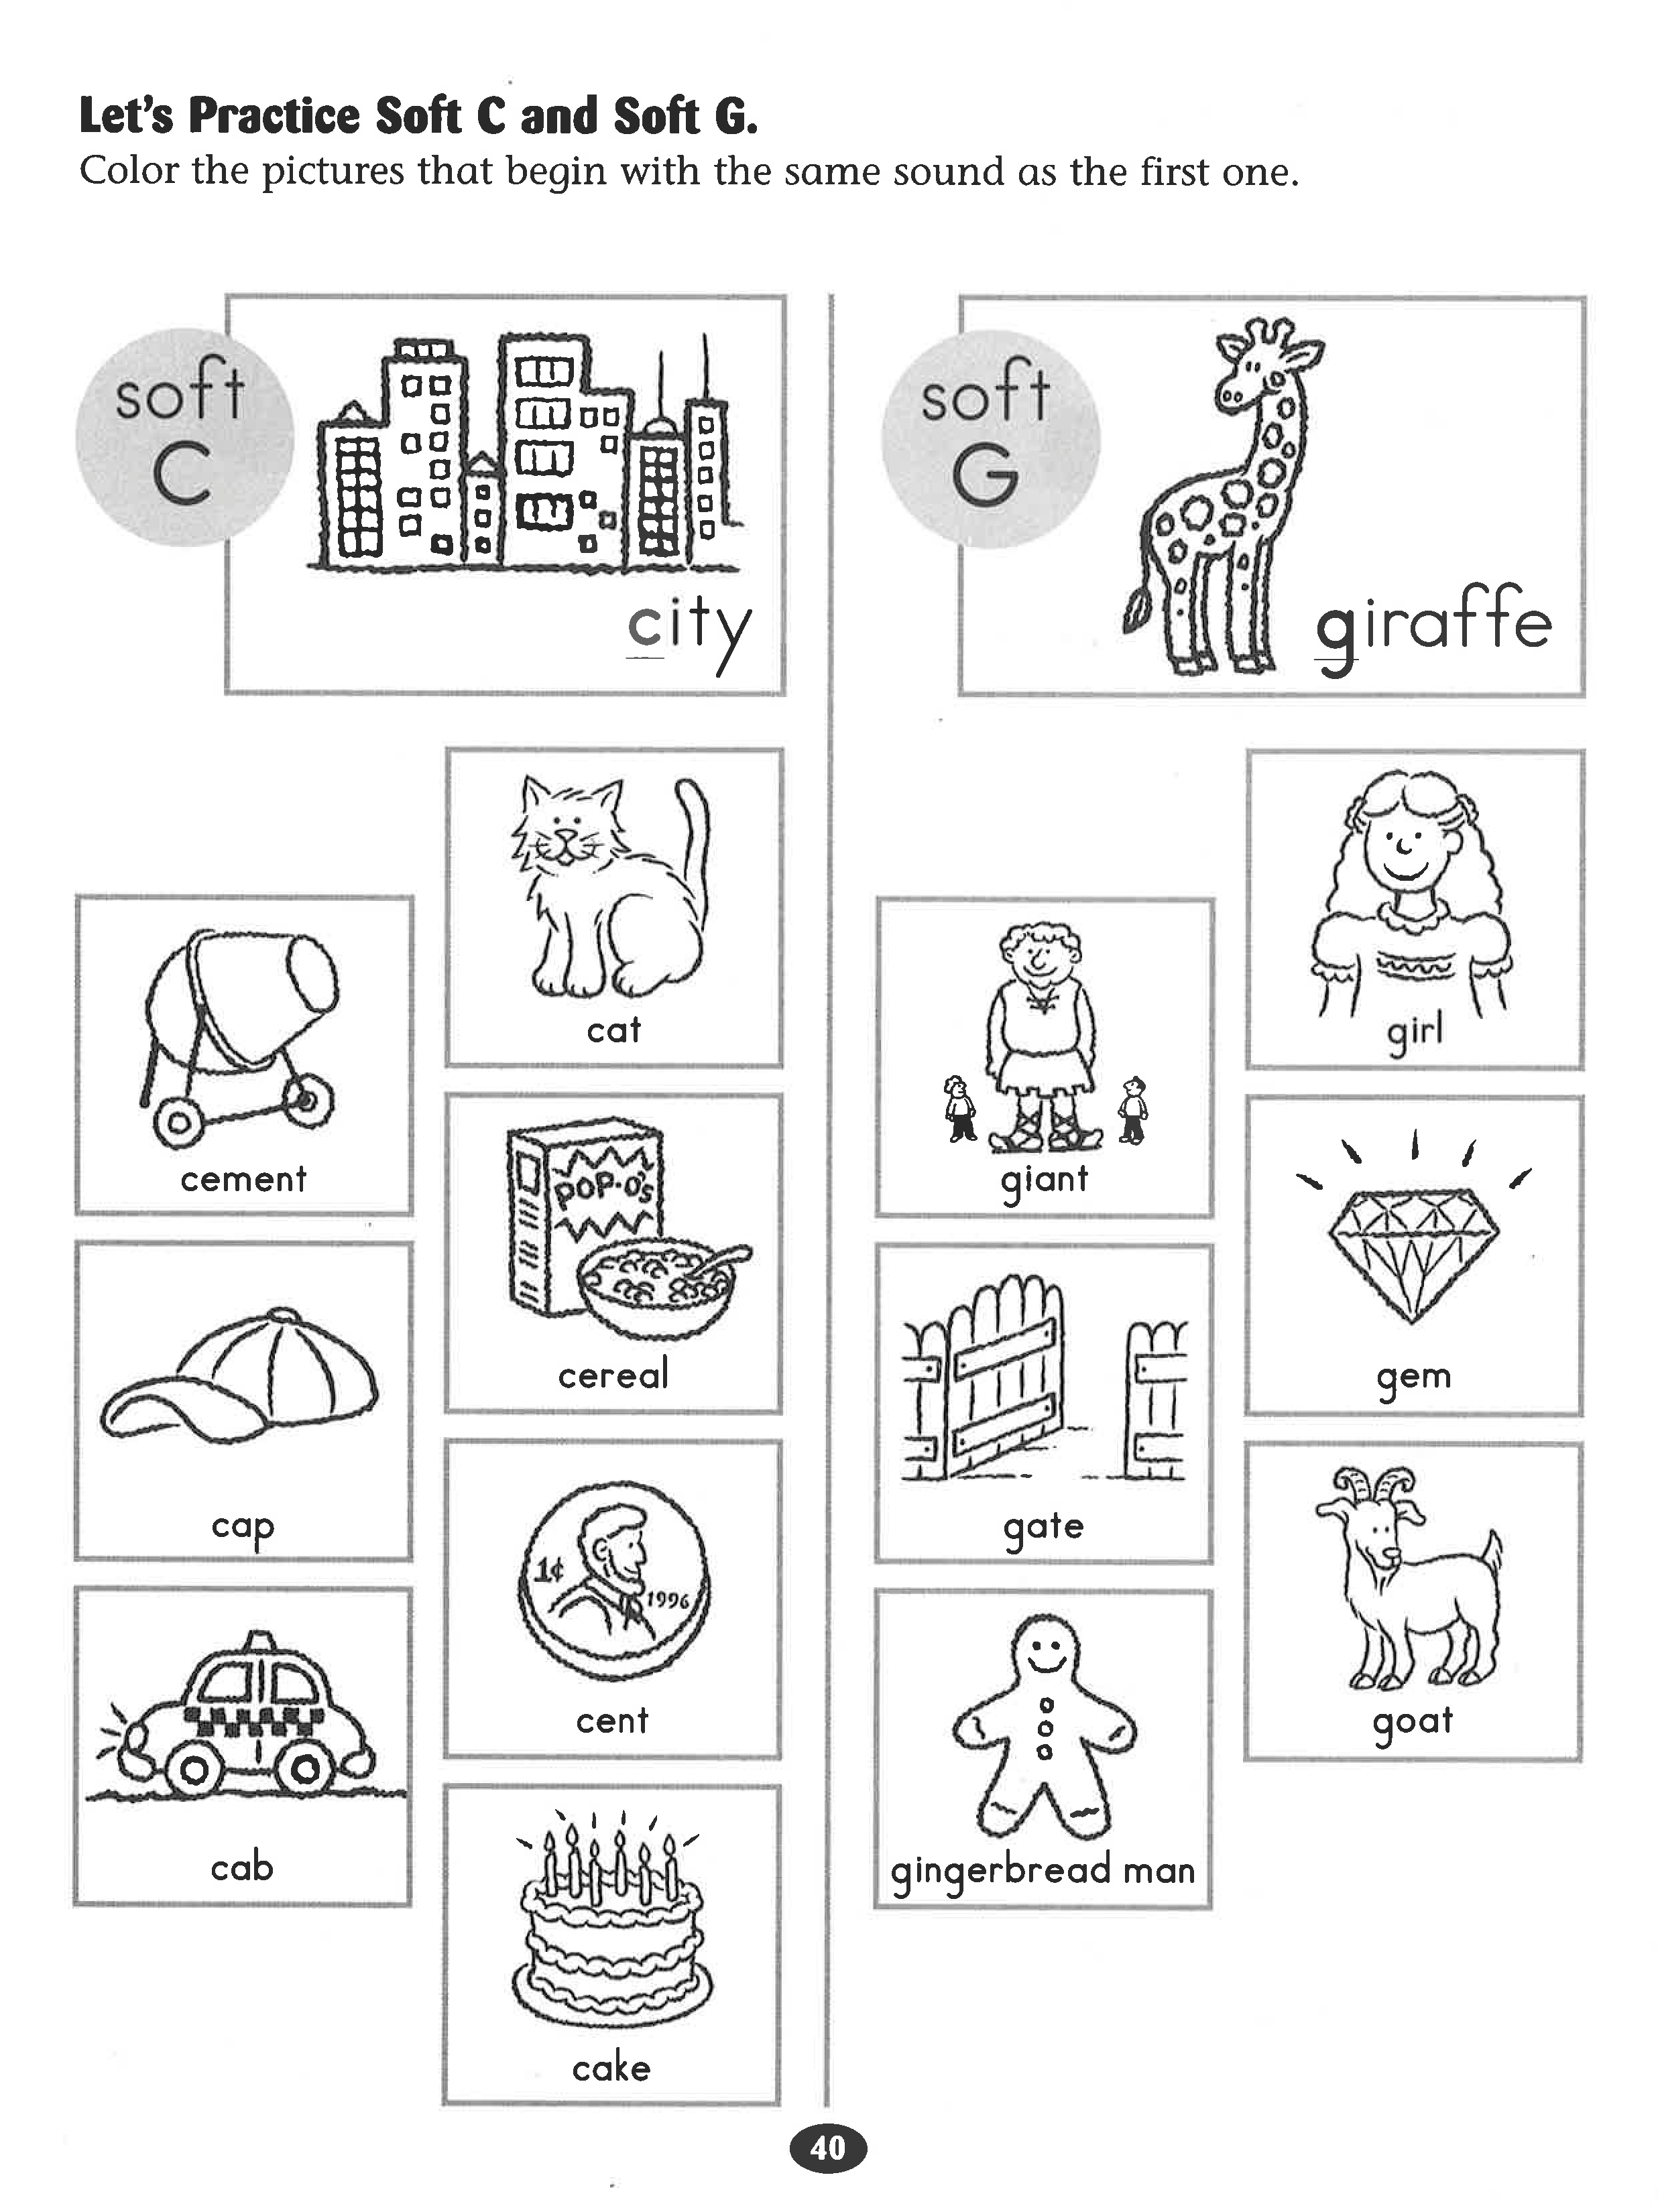 worksheet S Blends Worksheets lets practice s blends worksheet rockin reader pinterest soft c and g worksheet